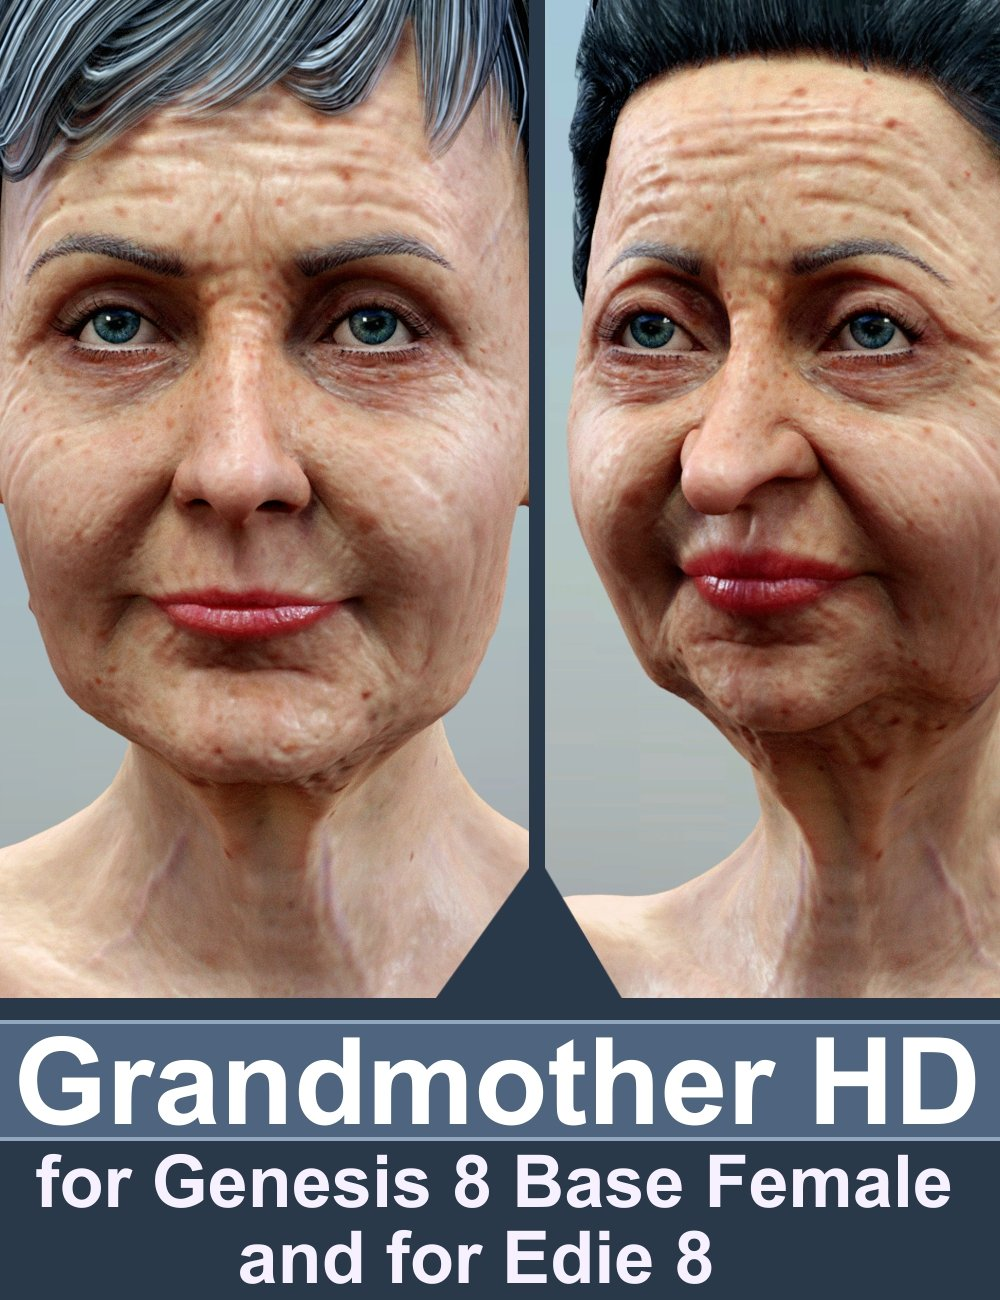 Grandmother HD for Genesis 8 Female and Edie 8 by: AlFan, 3D Models by Daz 3D